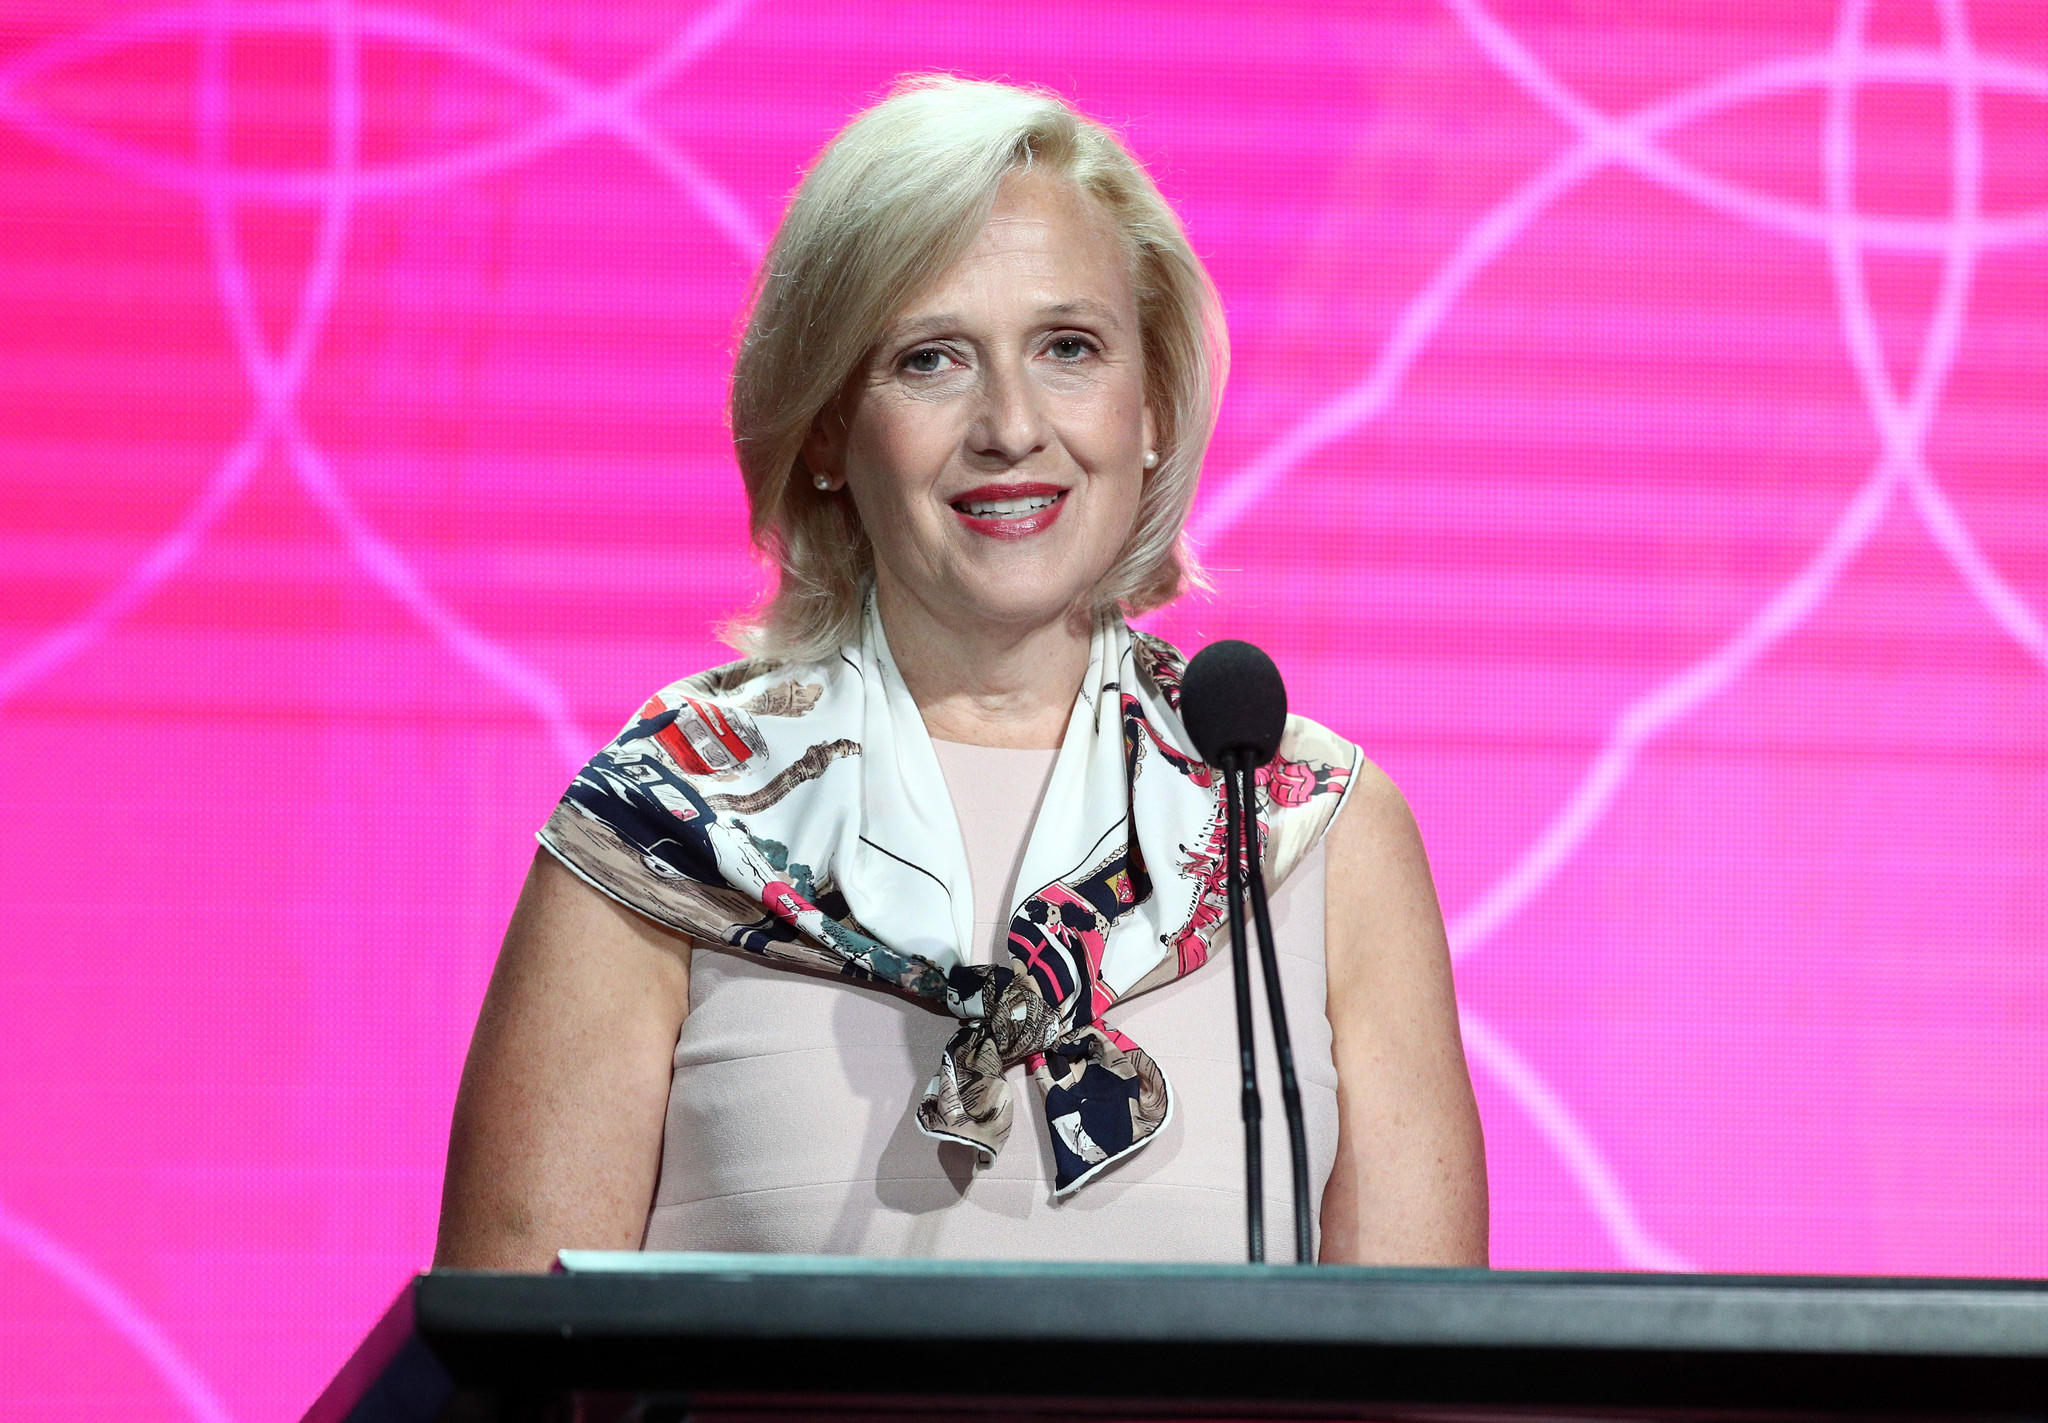 Paula Kerger, chief executive of PBS (Frederick M. Brown / Getty Images)